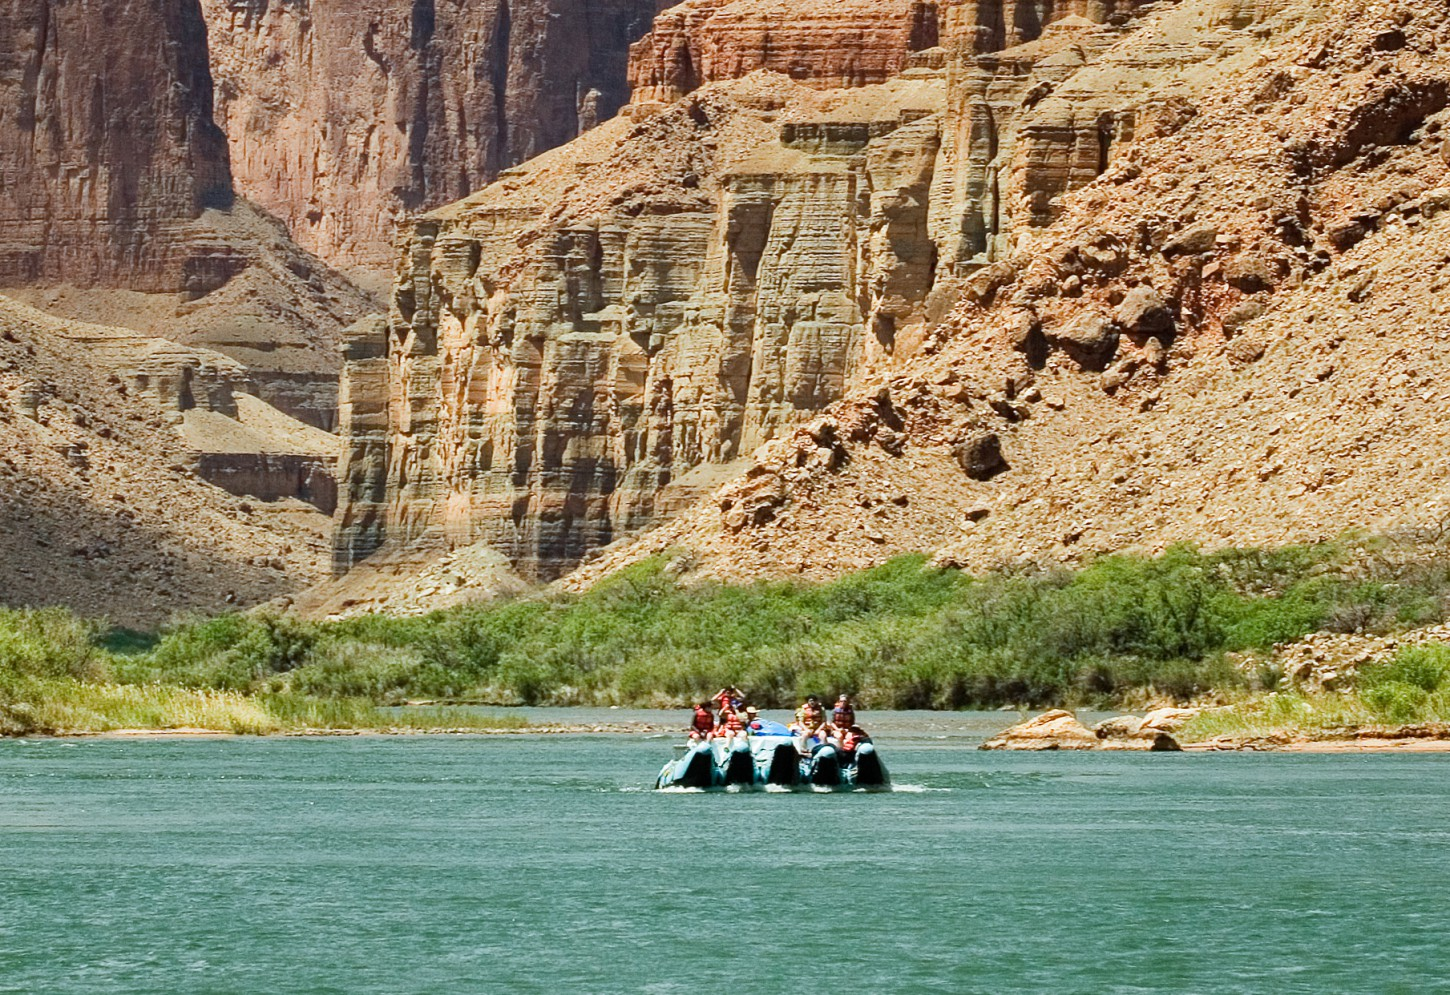 Meerdaagse raftingtocht door de Grand Canyon Kriski Plus